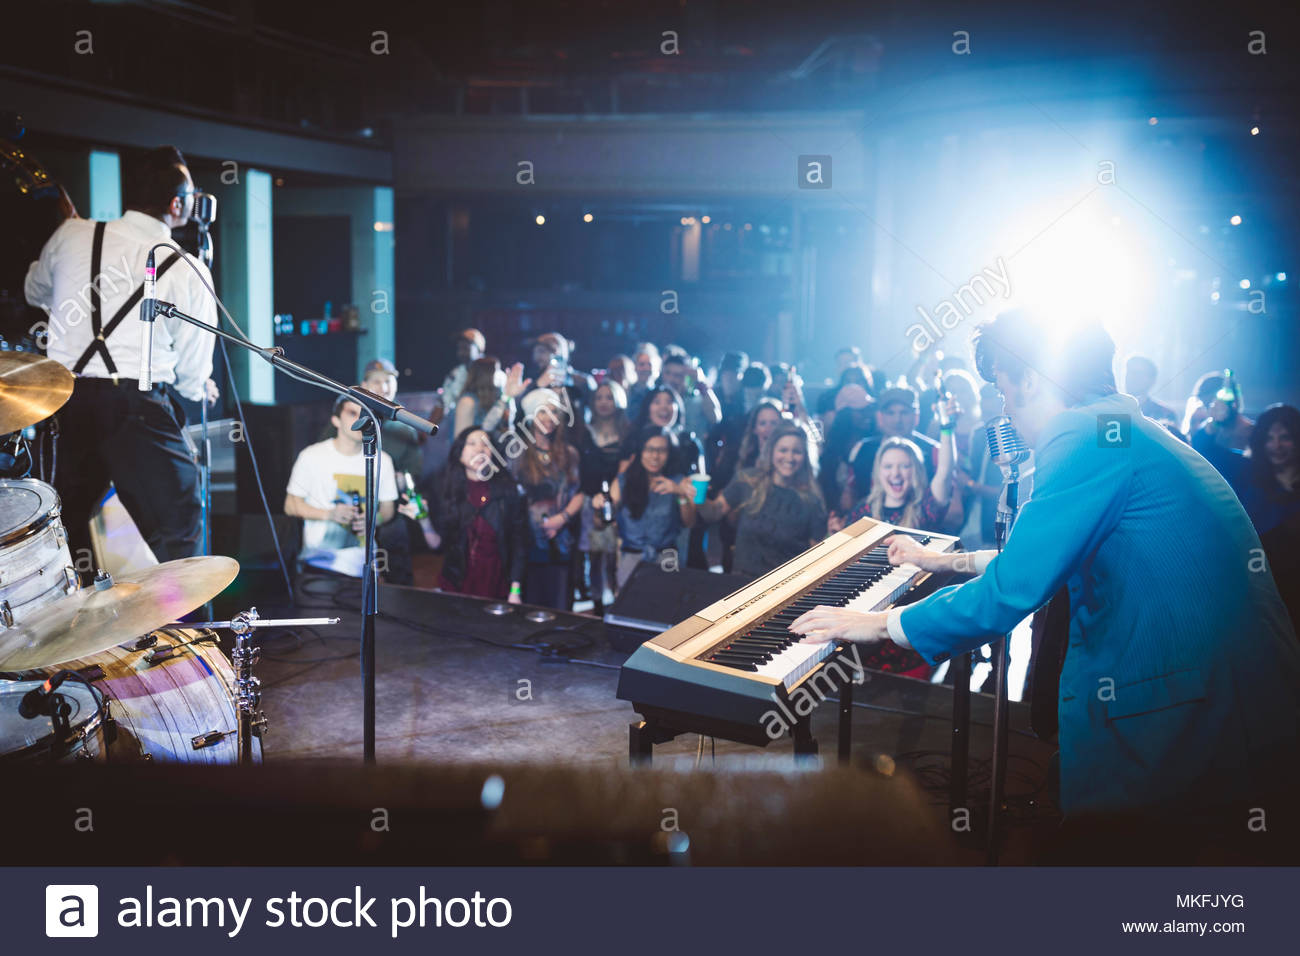 Crowd watching rockabilly musicians perform on stage at music concert - Stock Image